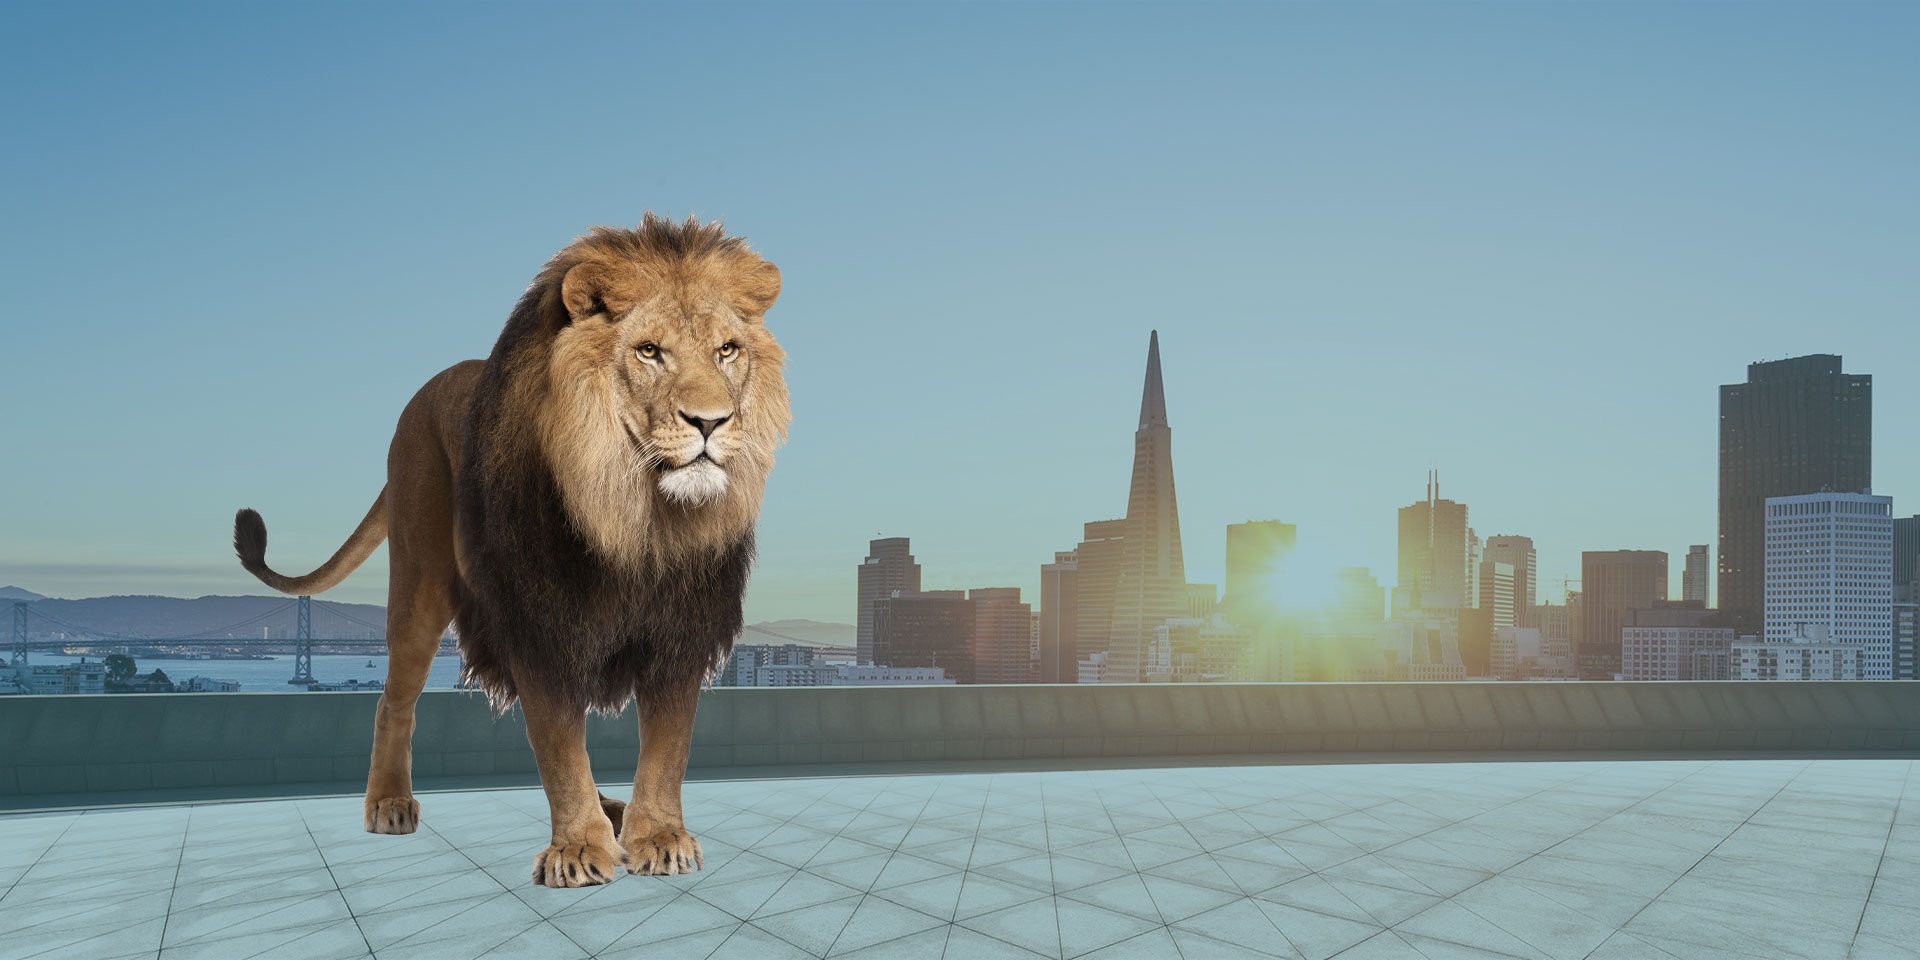 Lion standing on the roof of a building with the San Francisco skyline in the background and a setting sun